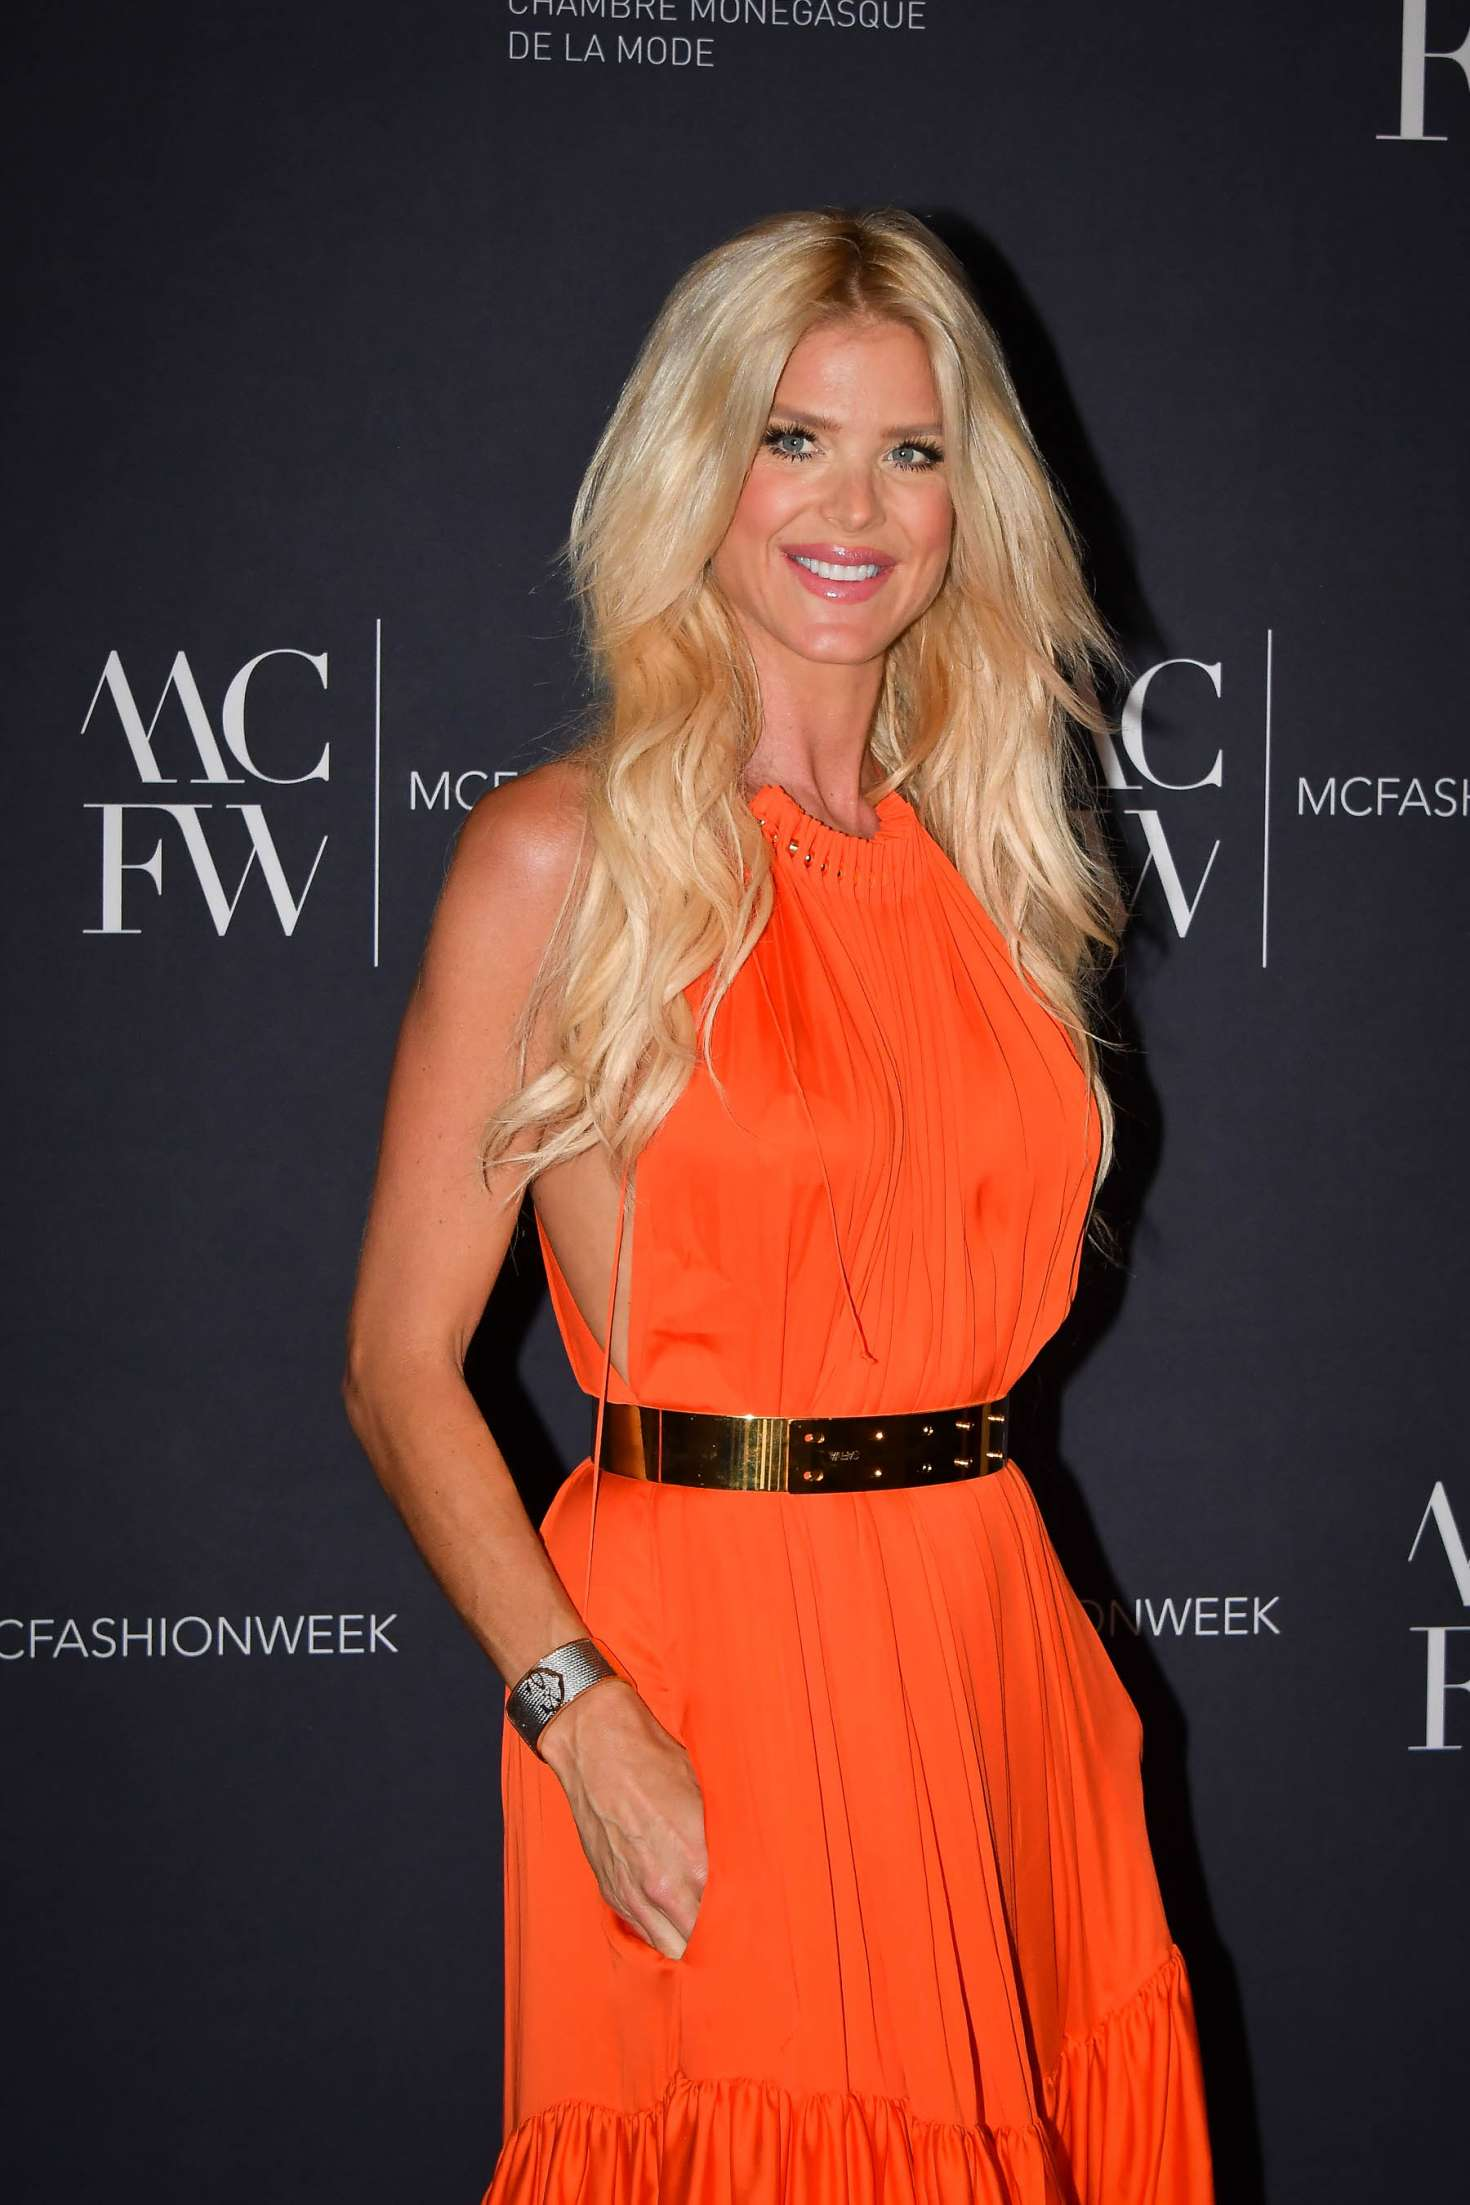 Victoria Silvstedt At Monte Carlo Fashion Week Gala And Awards Ceremony In Monaco